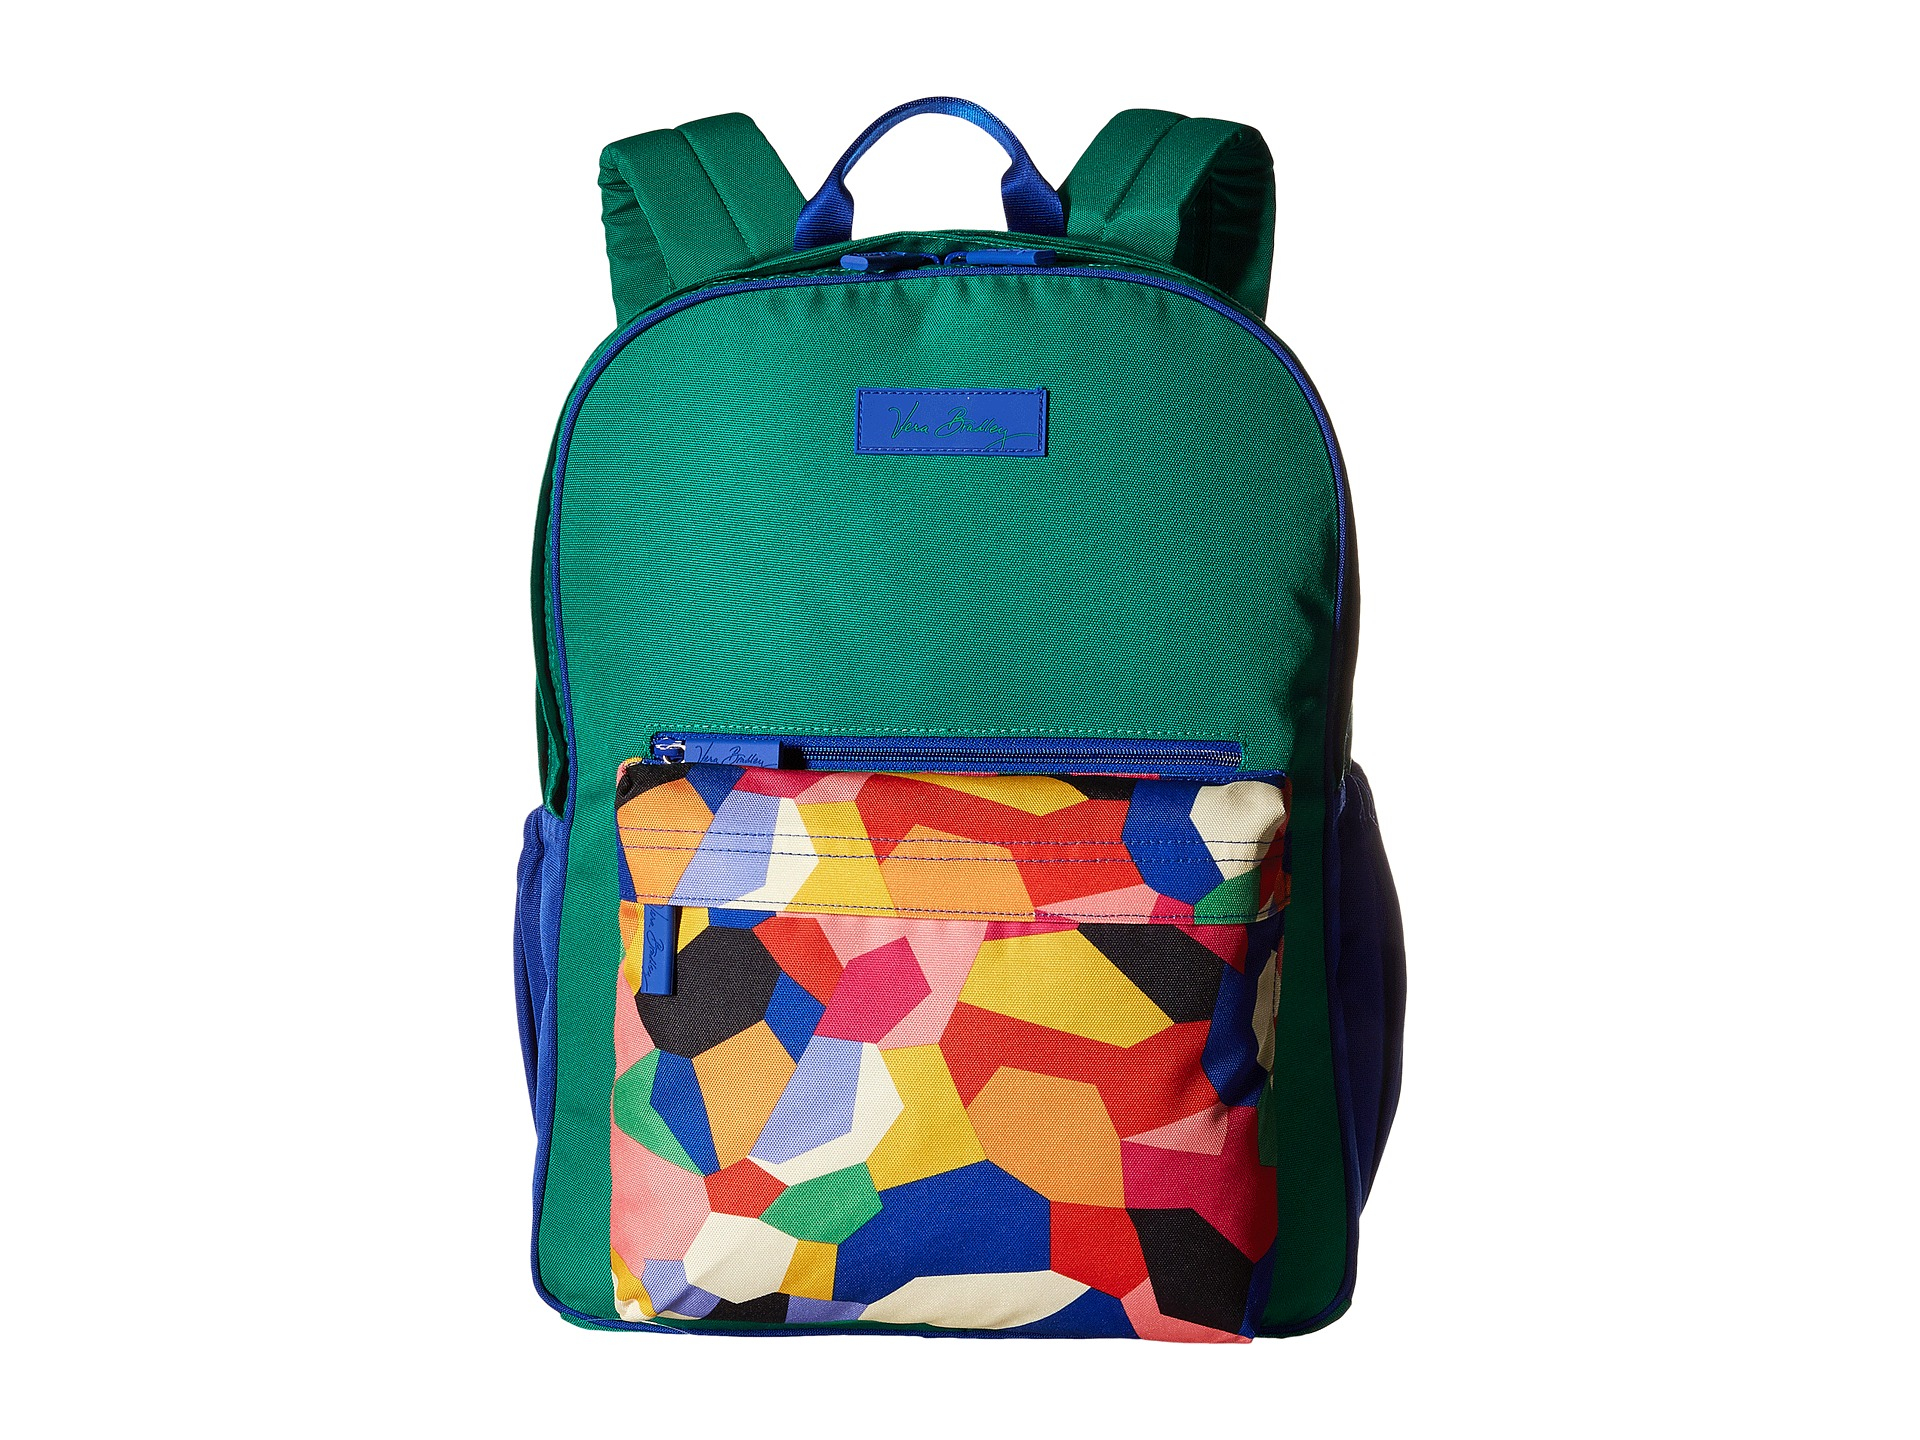 b06e646161c9 Lyst - Vera Bradley Large Color Block Backpack in Green